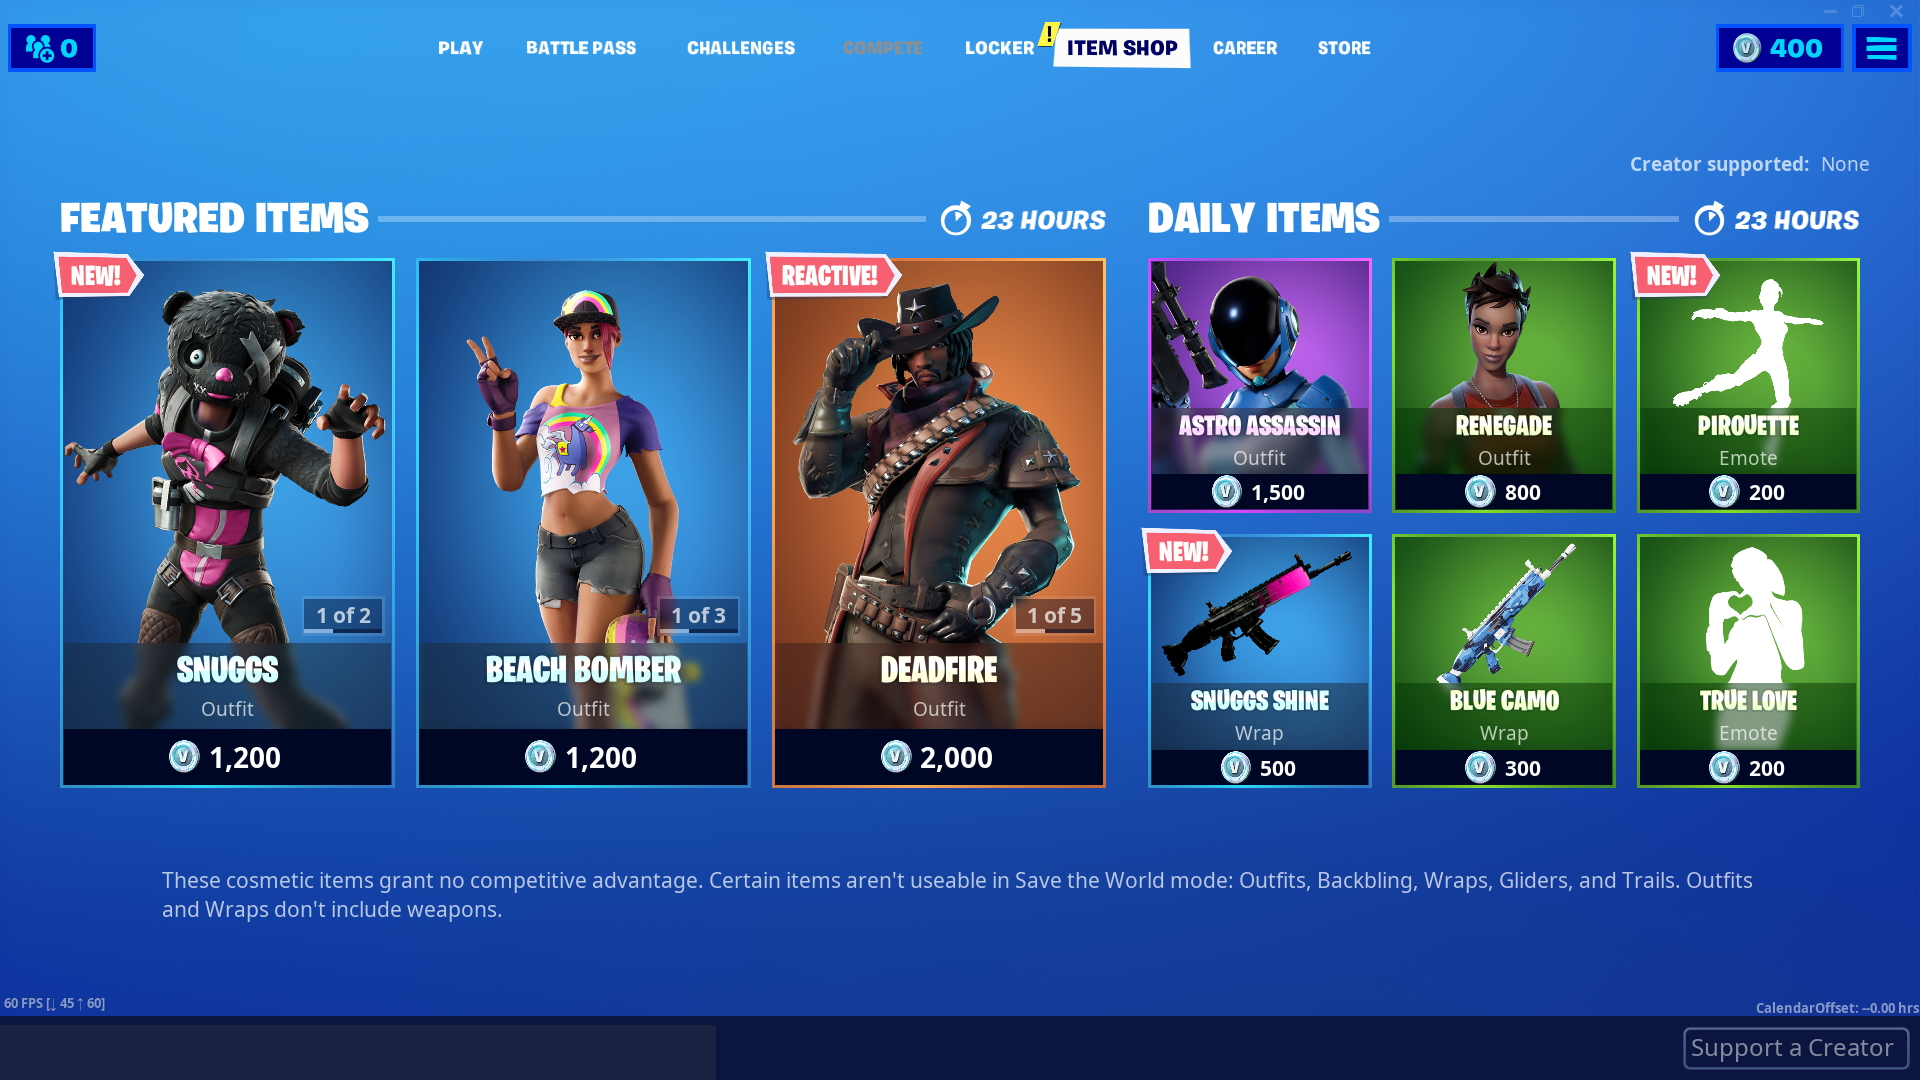 What's for Sale in the Fortnite Item Shop - October 18-19